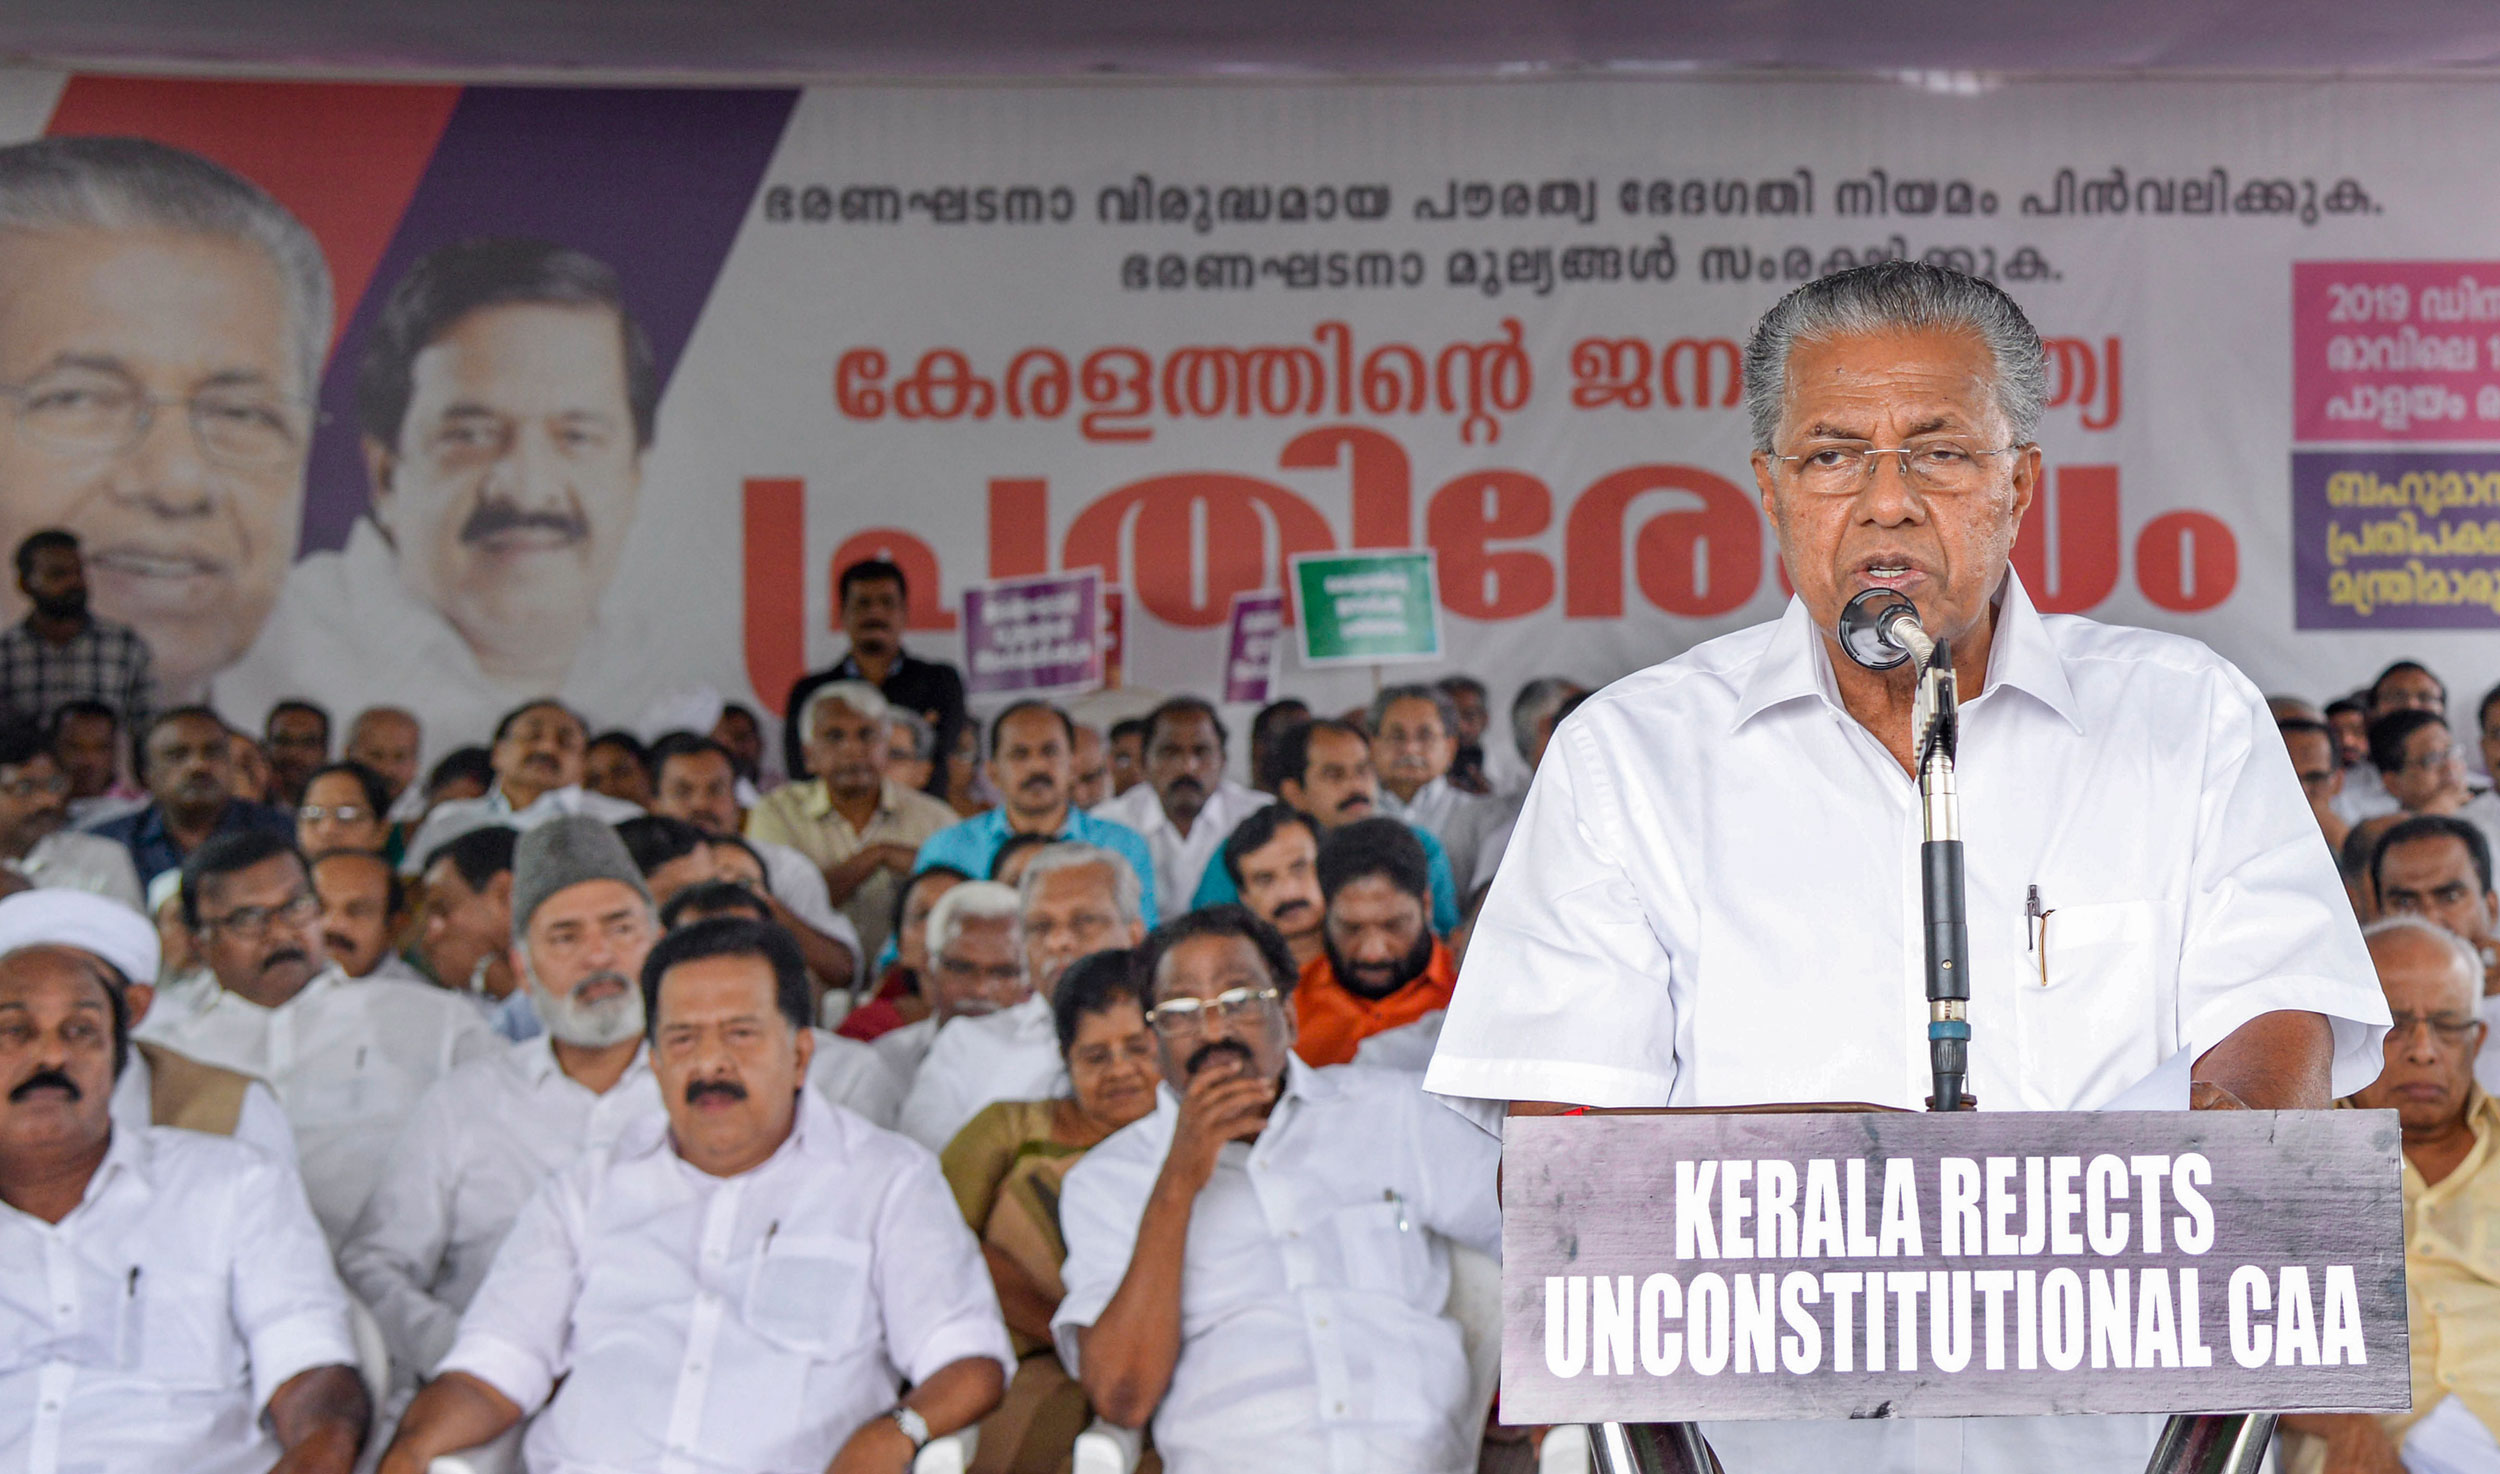 IN KERALA: Congress and CPM leaders share a stage